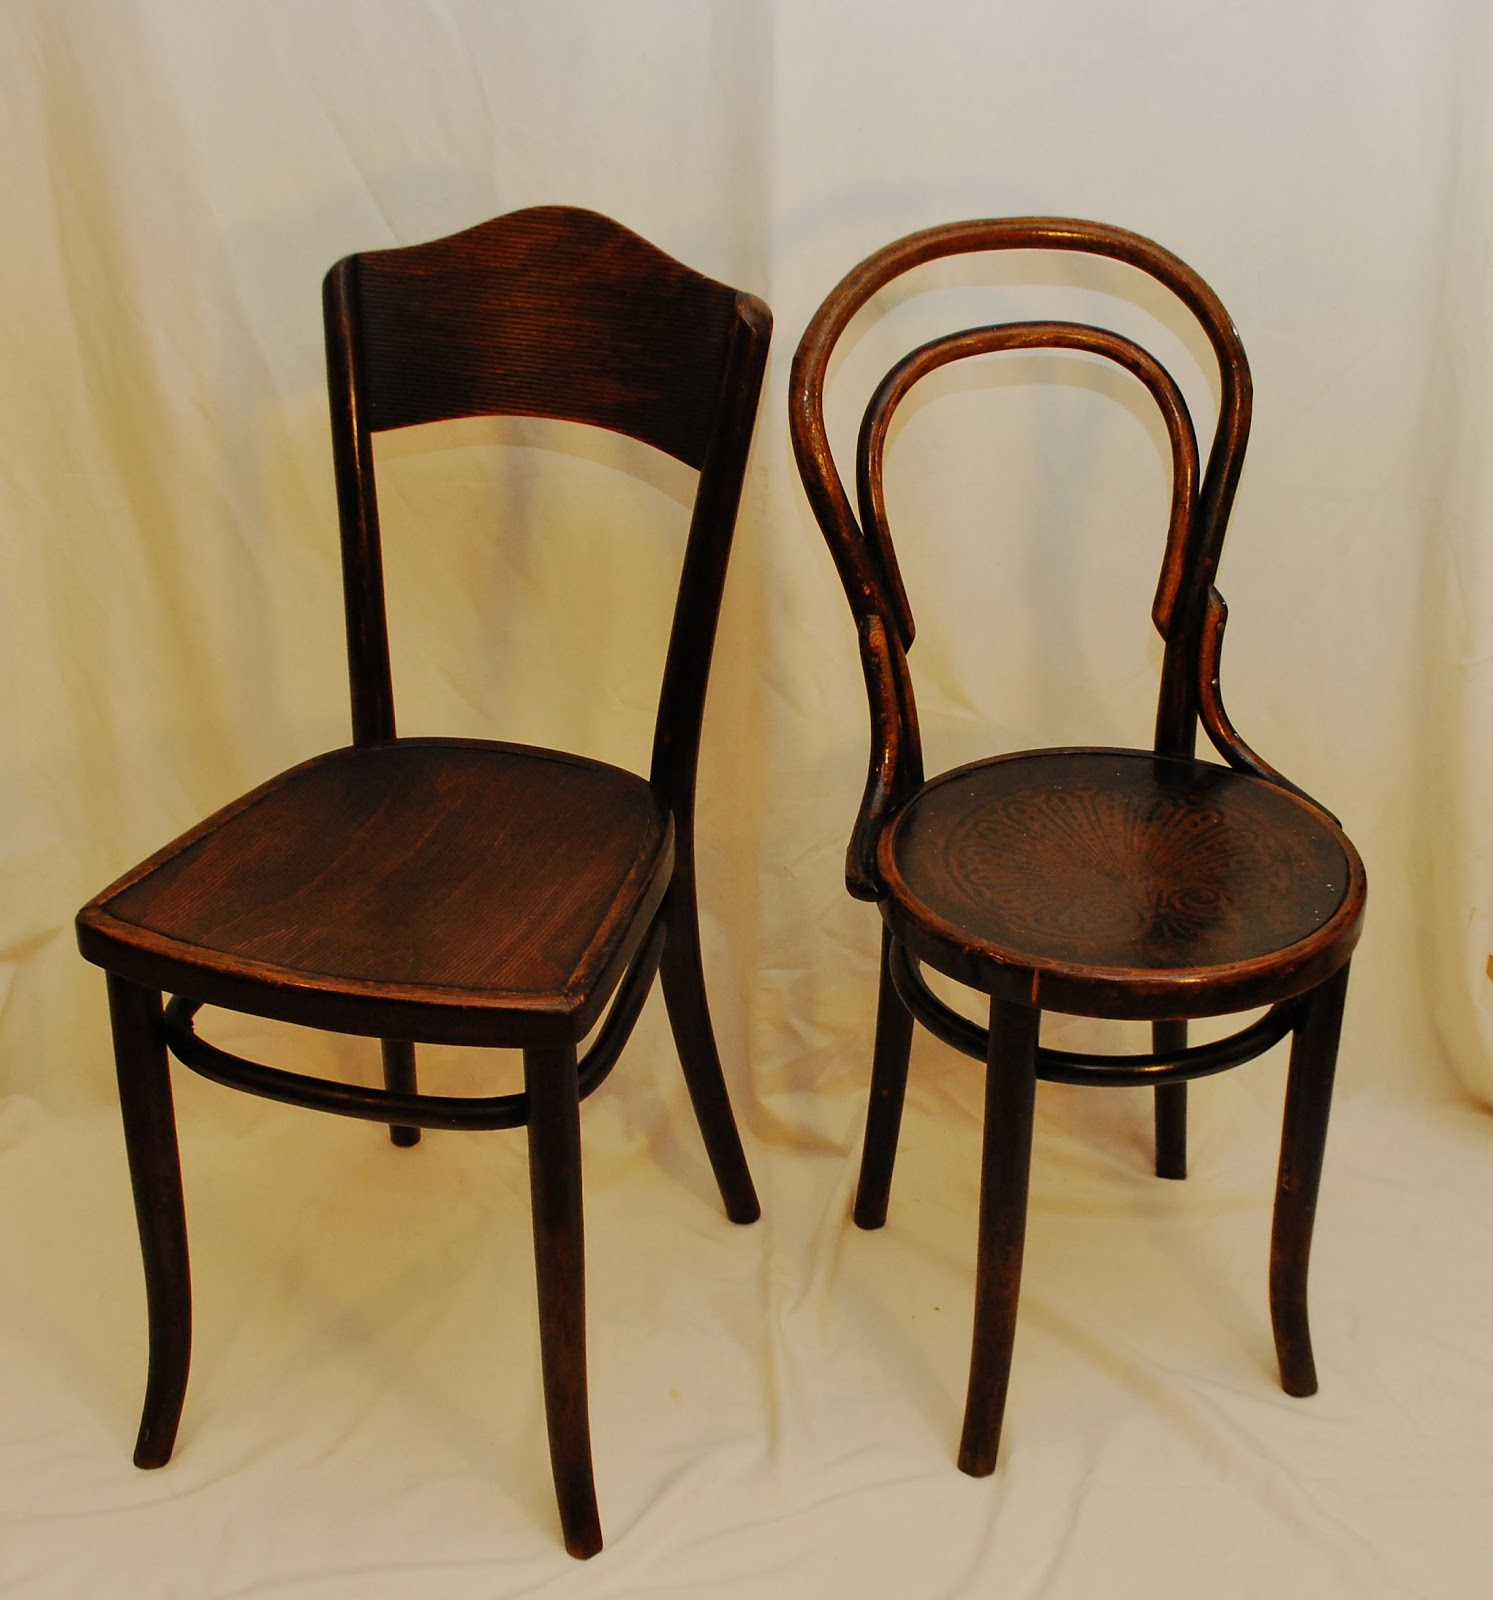 Bent Wood Chairs Tribute 20th Decor Authentic Thonet Bentwood Chairs